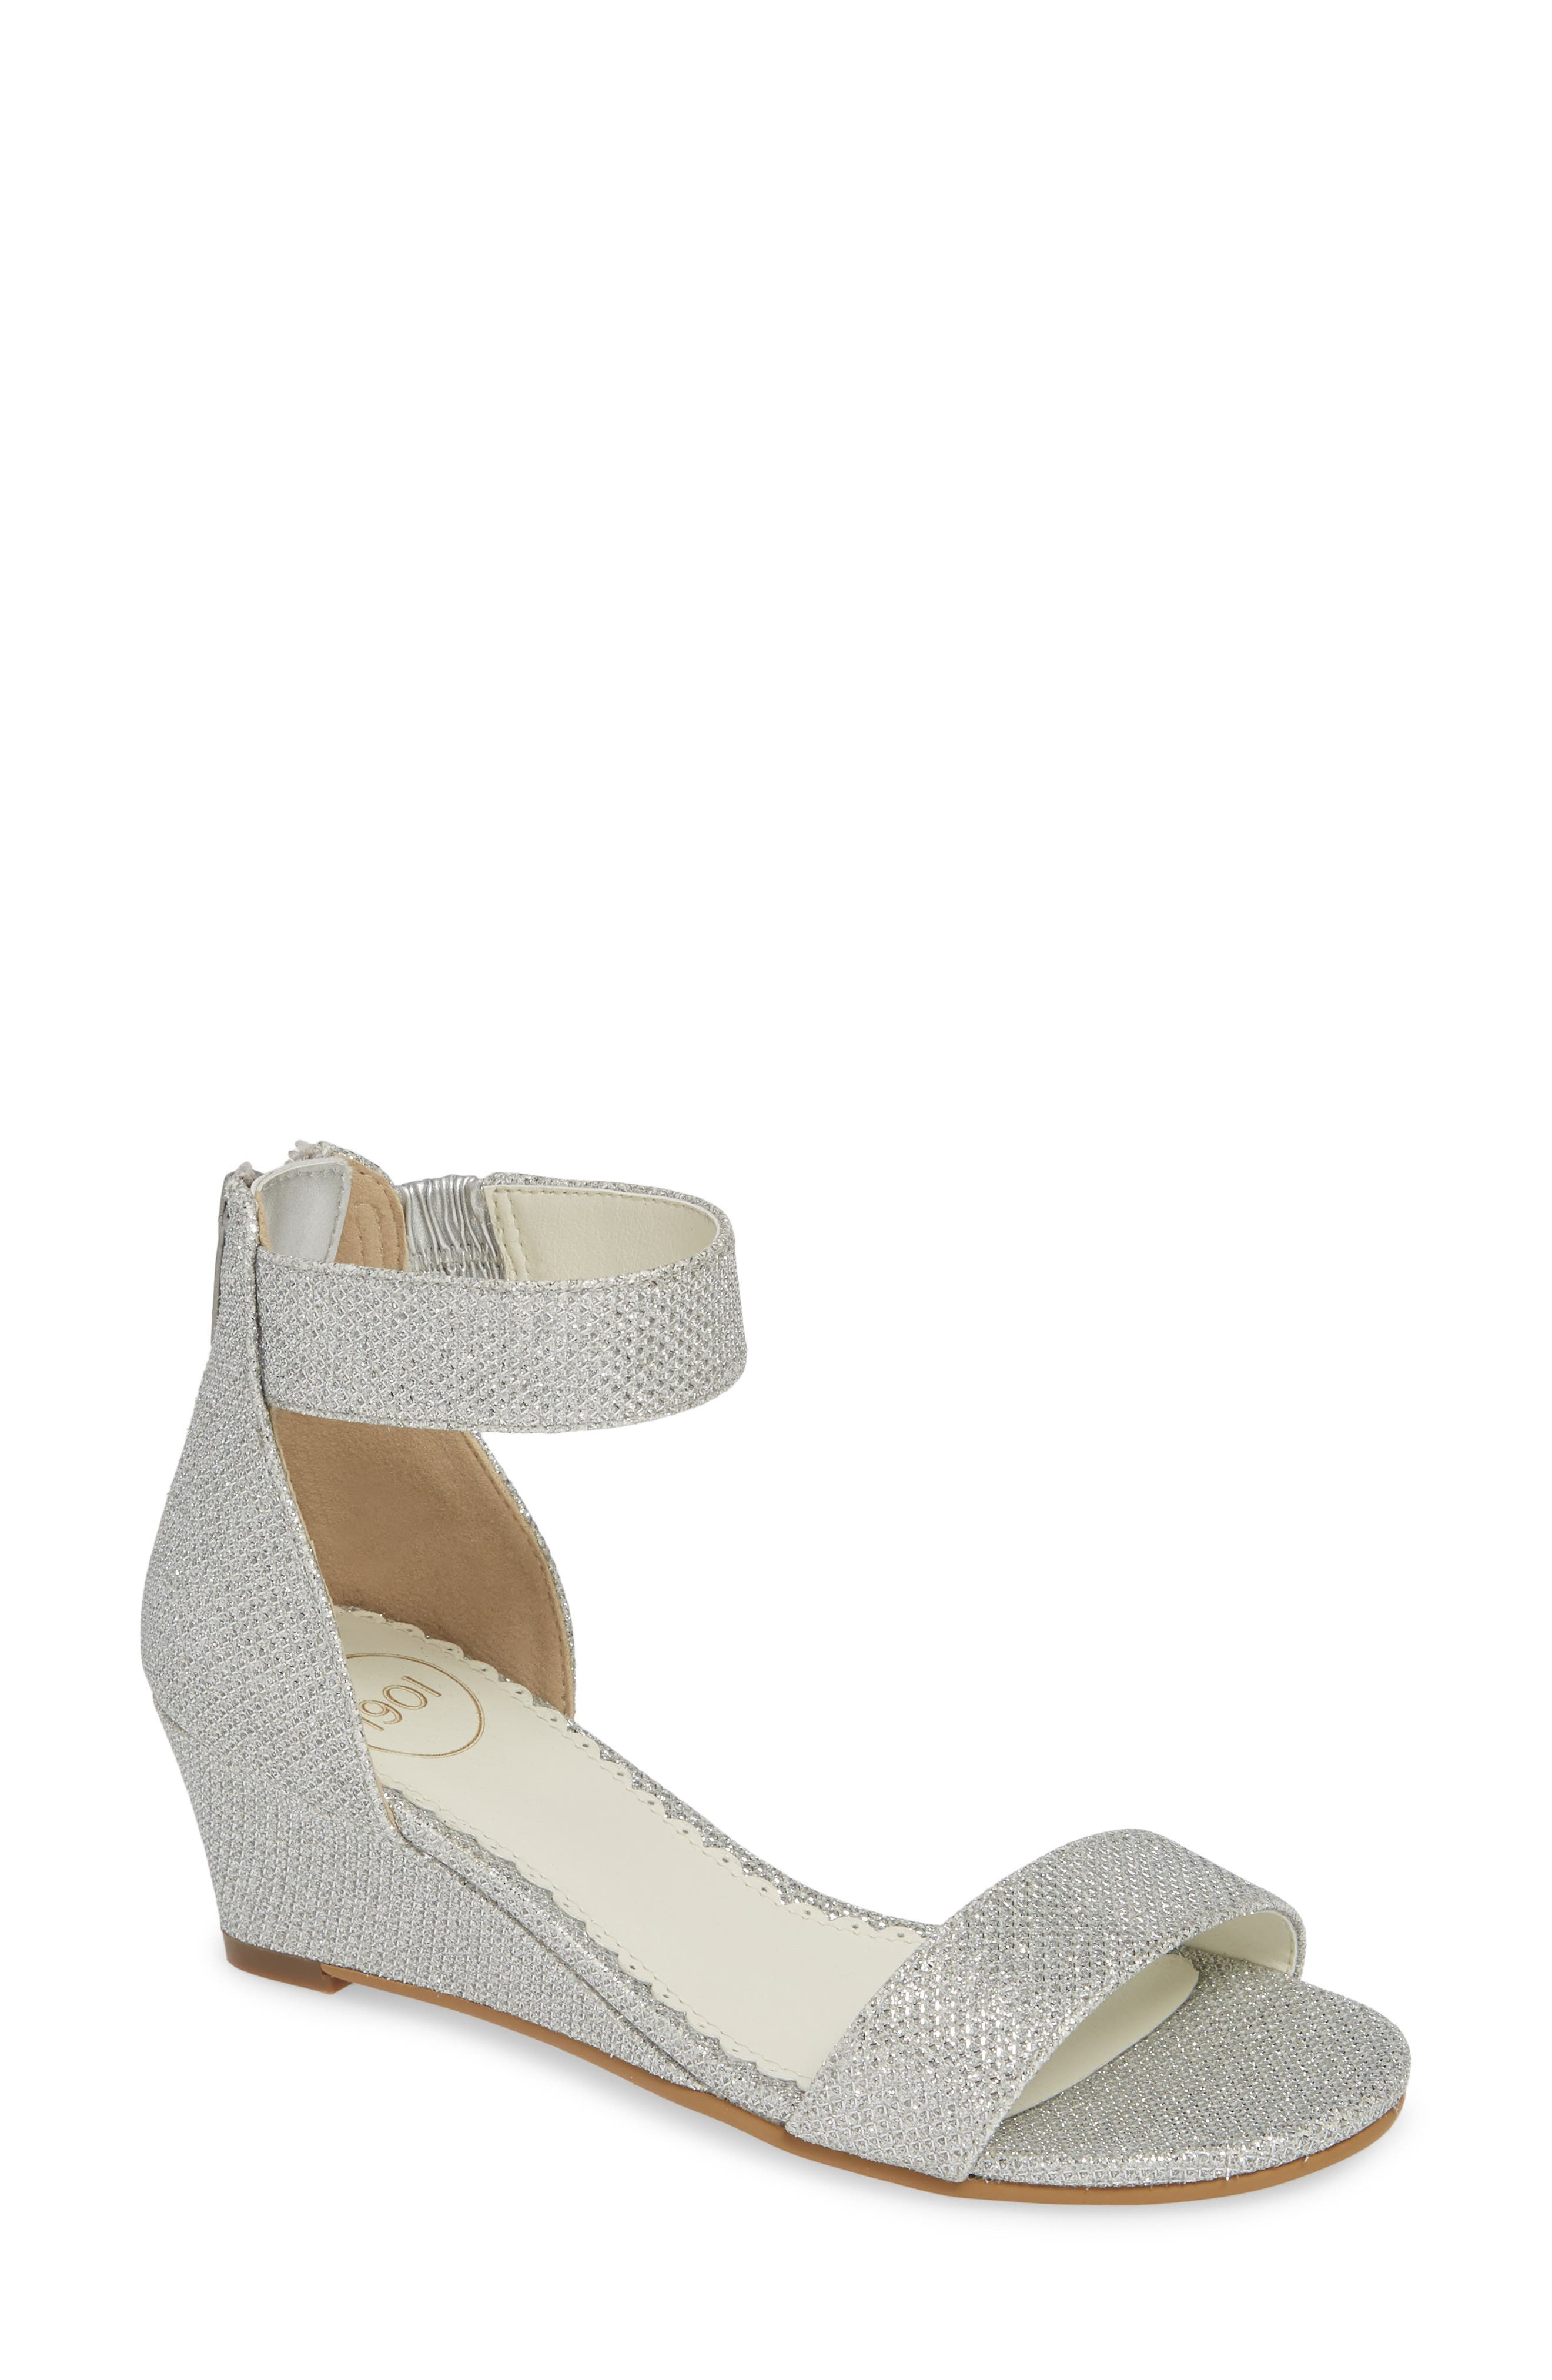 Cora Glitter Wedge Sandal, Main, color, SILVER SHIMMER FAUX LEATHER